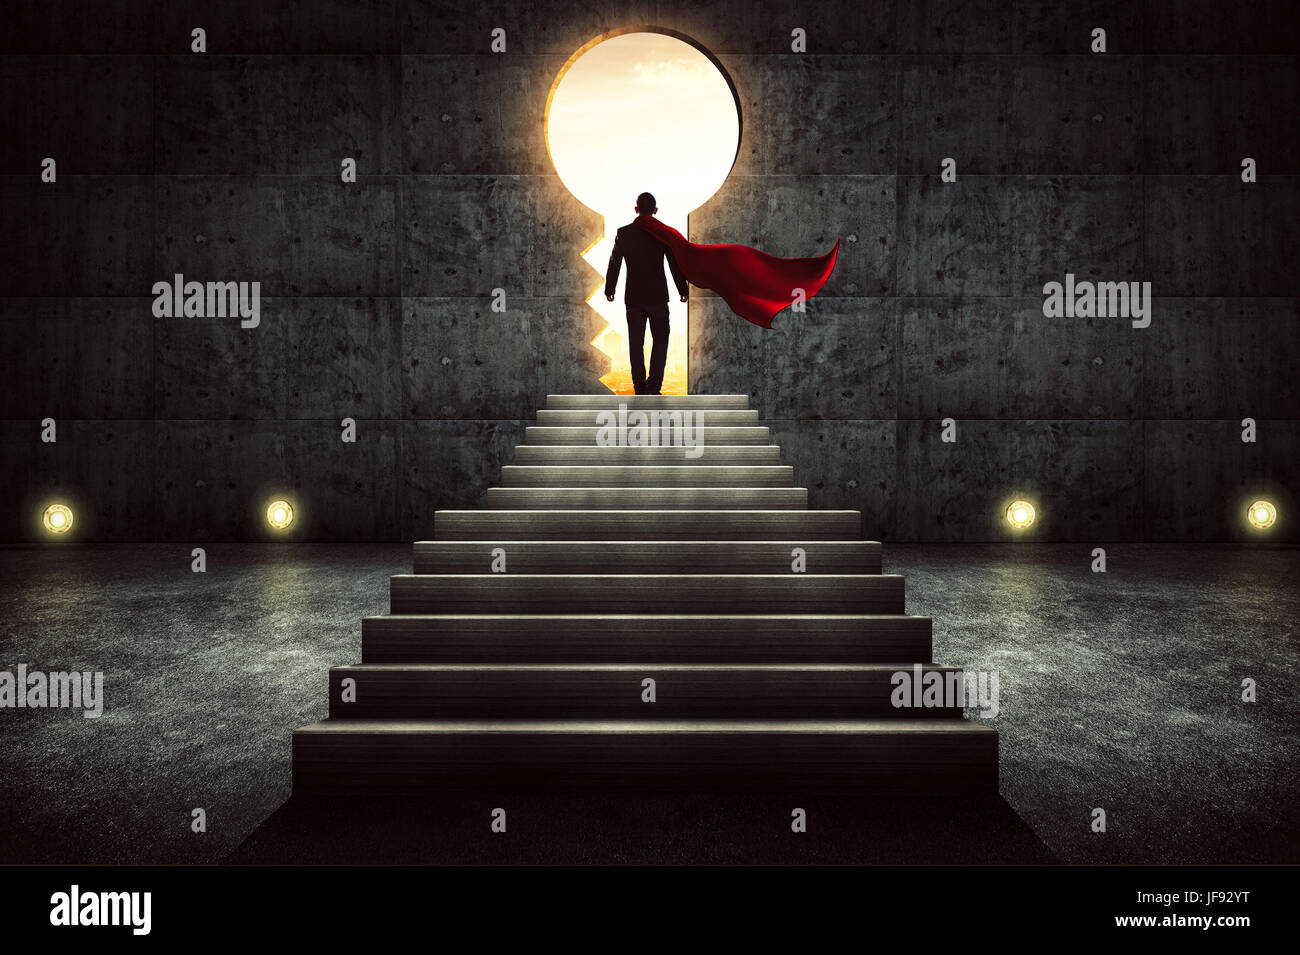 Businessman in a suit and cape stand on stair against concrete wall with exit door ,sunrise scene city skyline outdoor - Stock Image